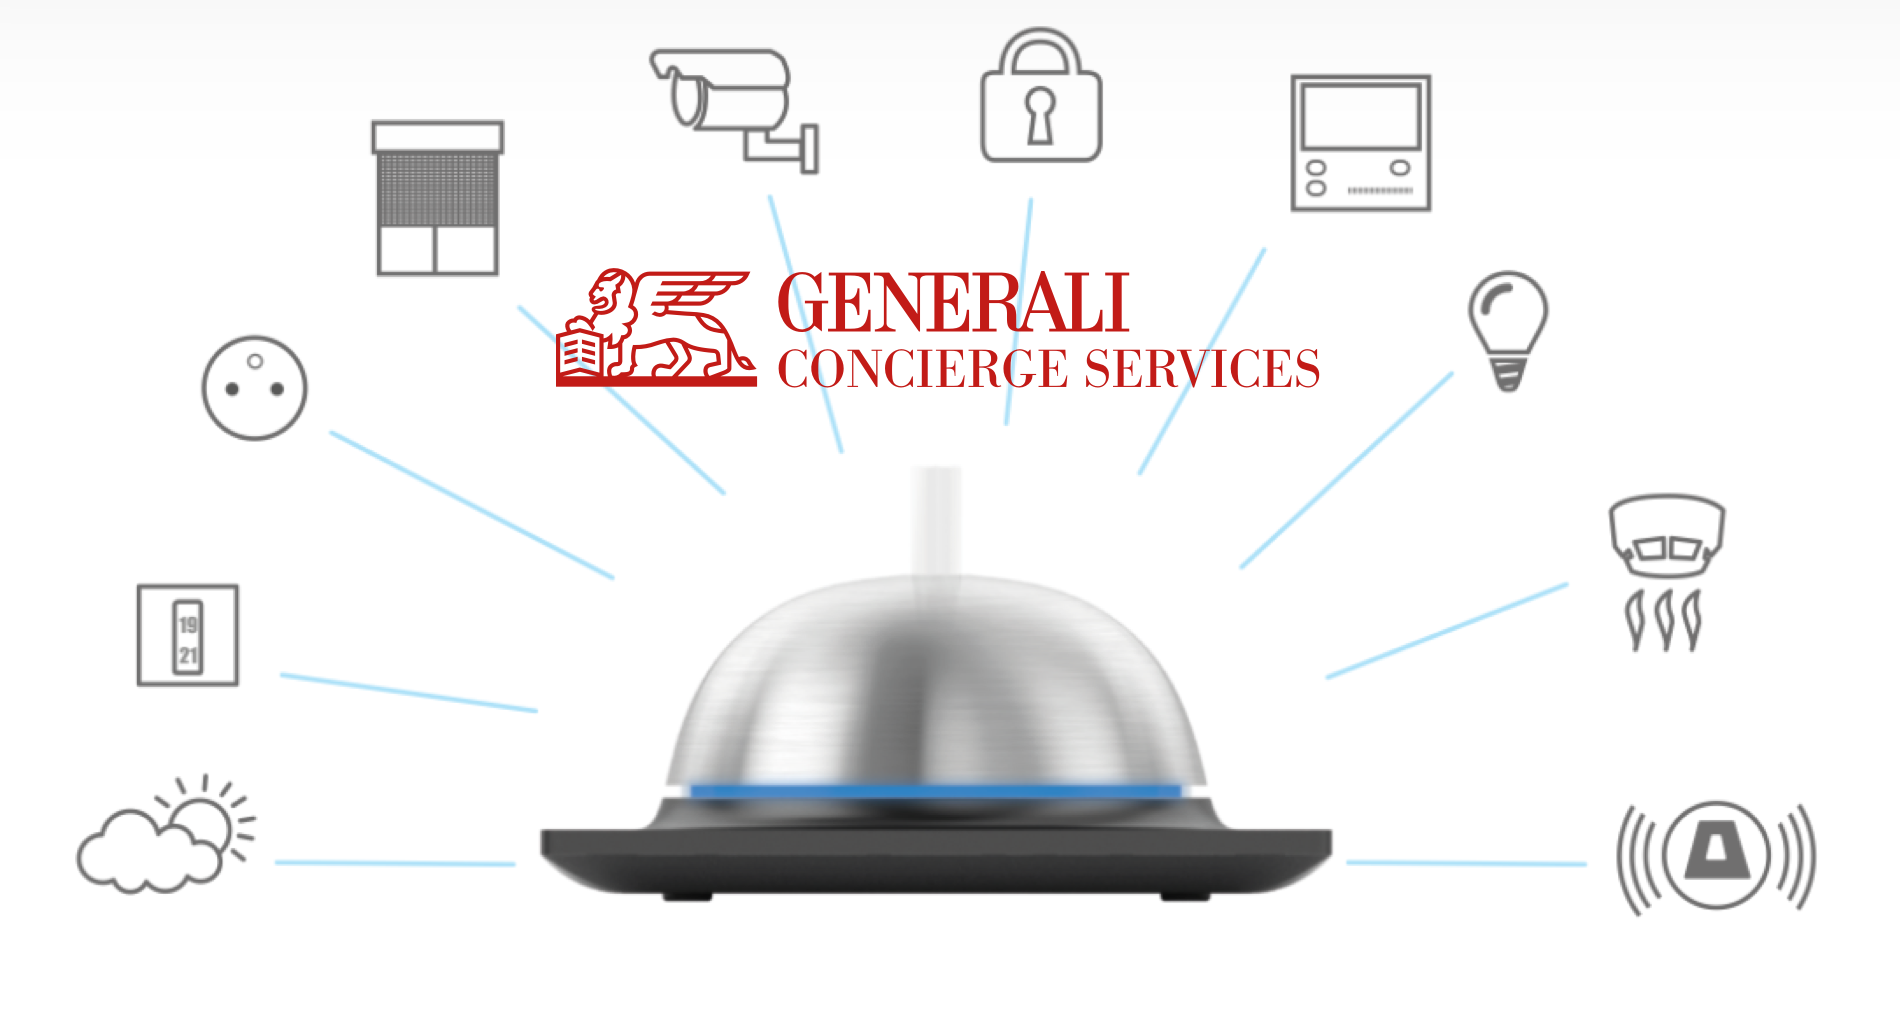 Generali concierge services